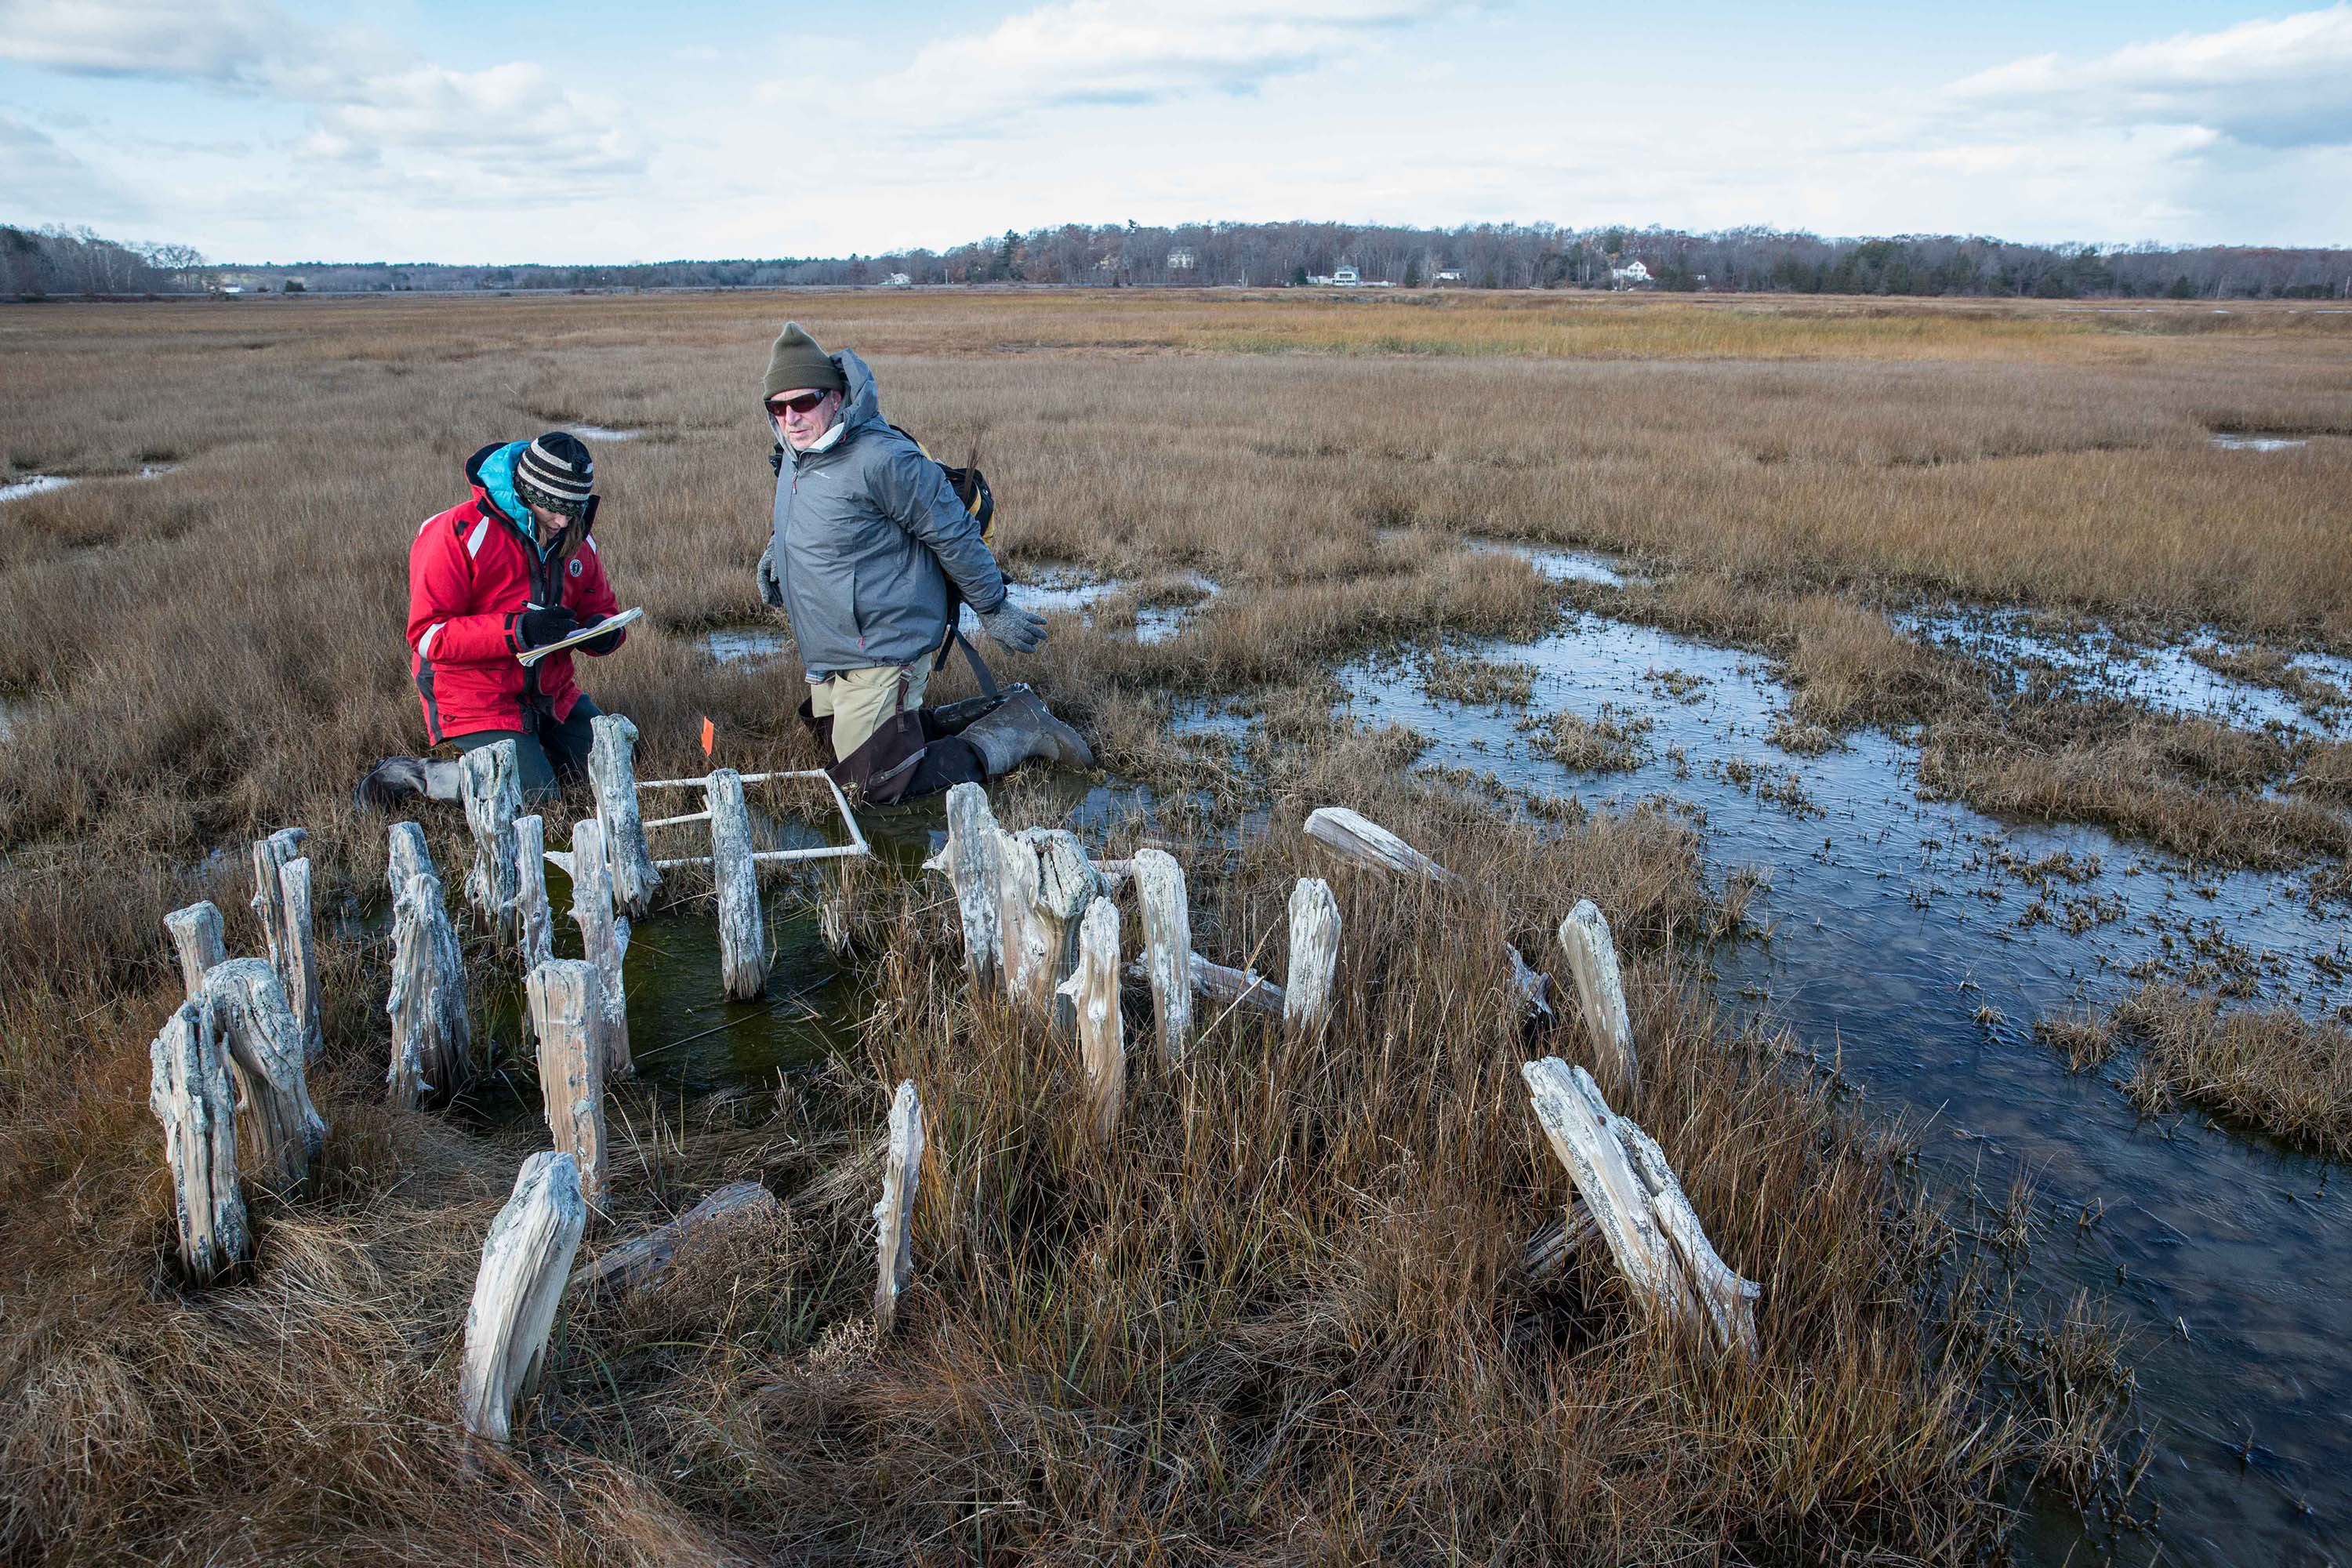 Alyssa Novak, a coastal ecologist and research assistant professor at Boston University, works with Peter Phippen, a coastal scientist, to measure vegetation height and density on the Great Marsh in Newbury. Both scientists are dedicated to ensuring the health of this vast wilderness. The wooden posts in front of them are the remains of an old straddle on which mounds of salt hay were stacked, once a common sight on the marsh. (Photo by Coco McCabe/GroundTruth)